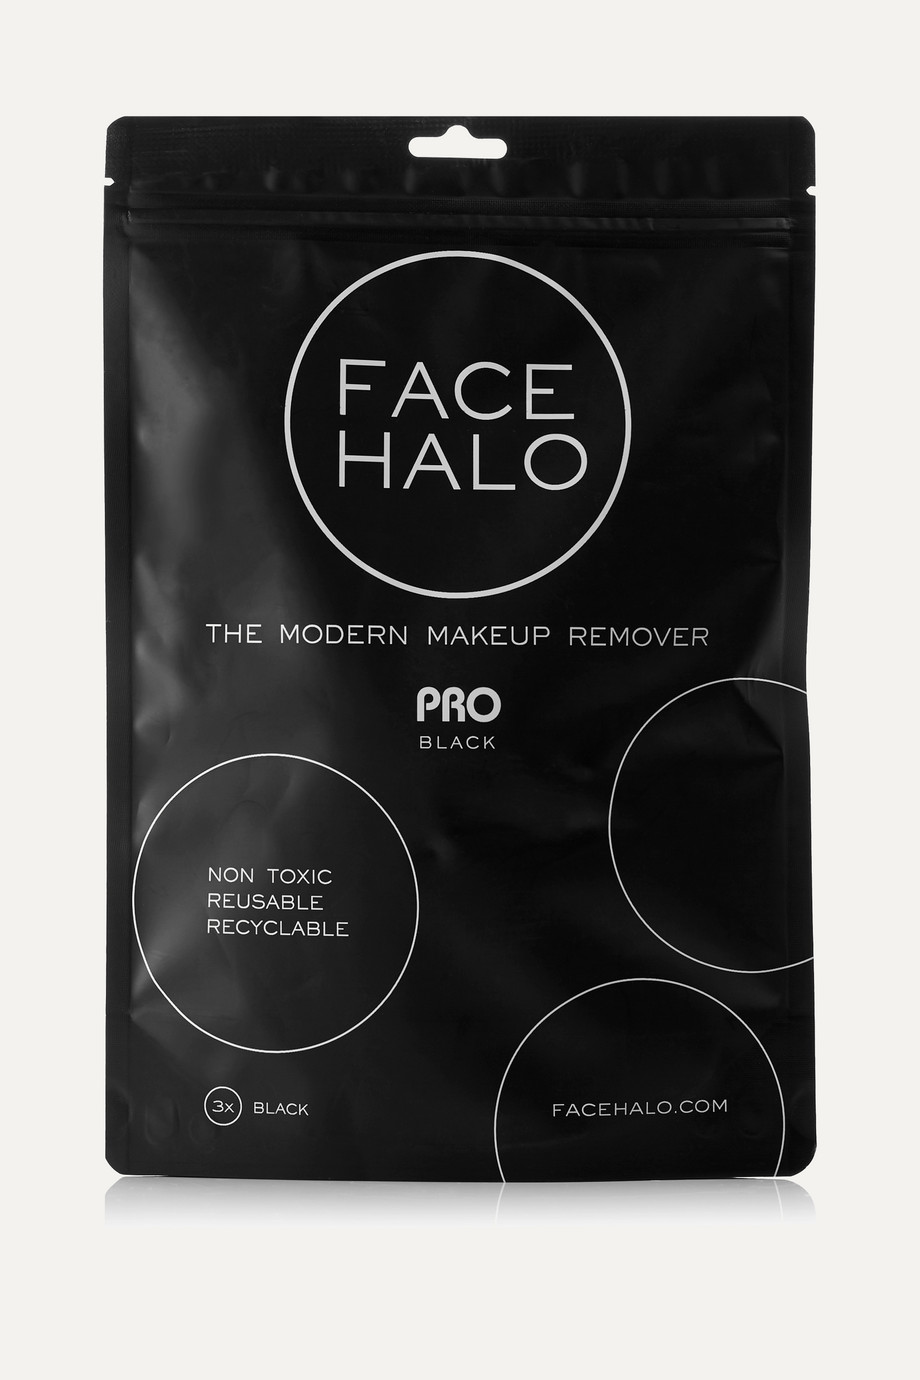 FACE HALO + NET SUSTAIN Pro set of three makeup remover pads